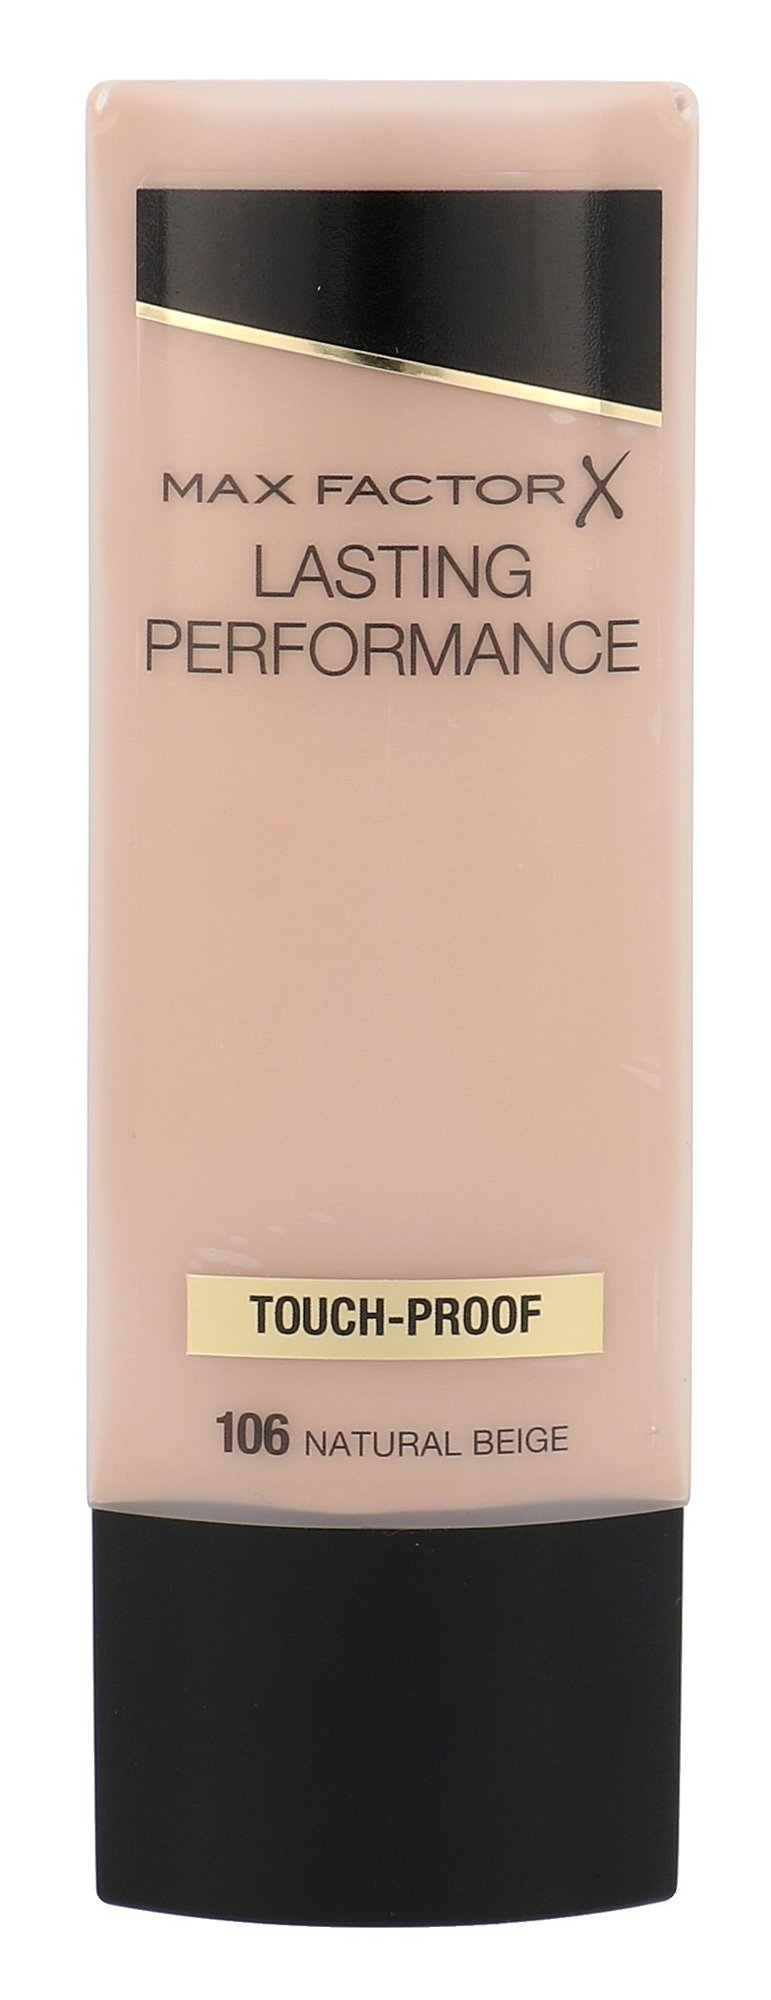 Max Factor Lasting Performance Make-Up Cosmetic 35ml 106 Natural Beige